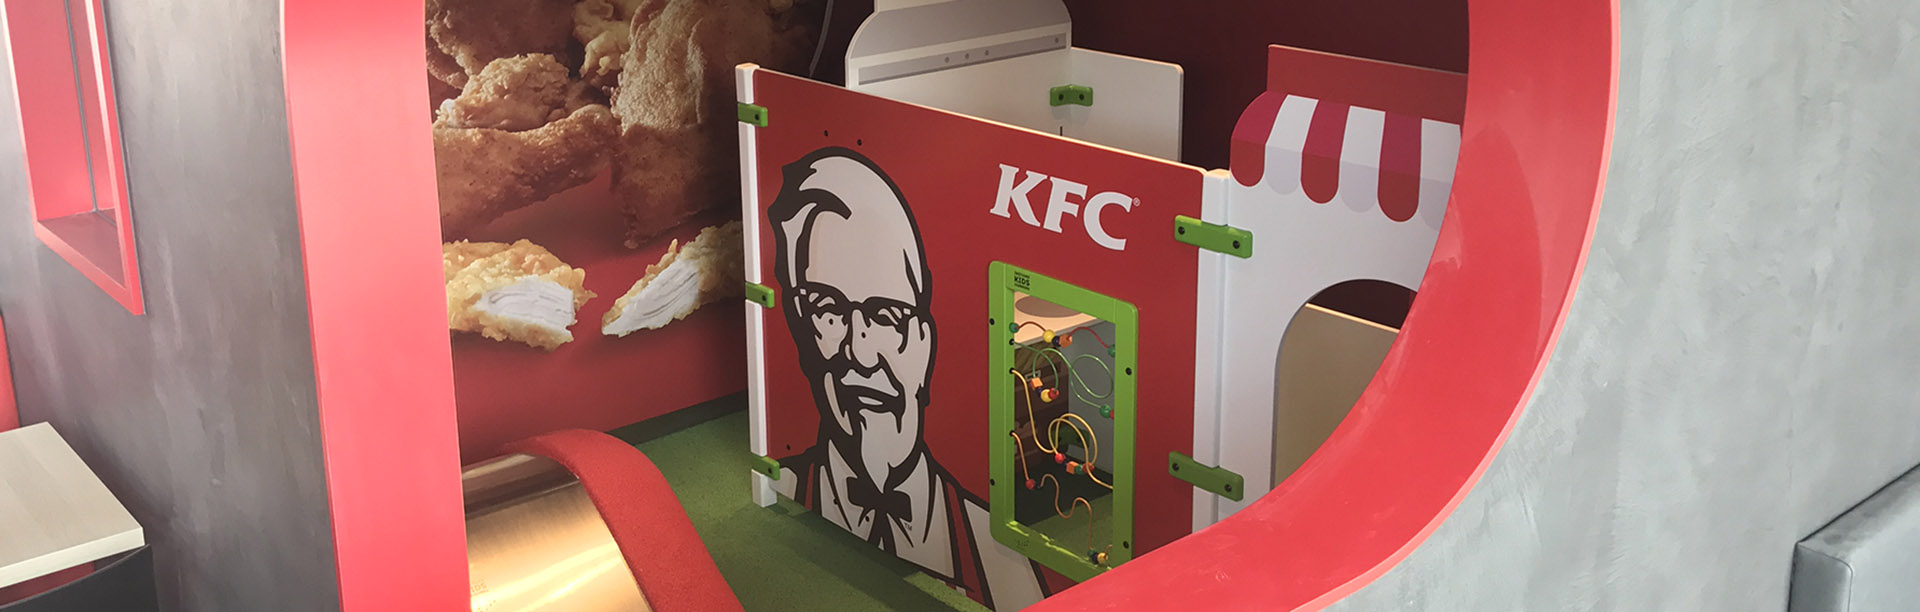 this image shows a kids corner at KFC